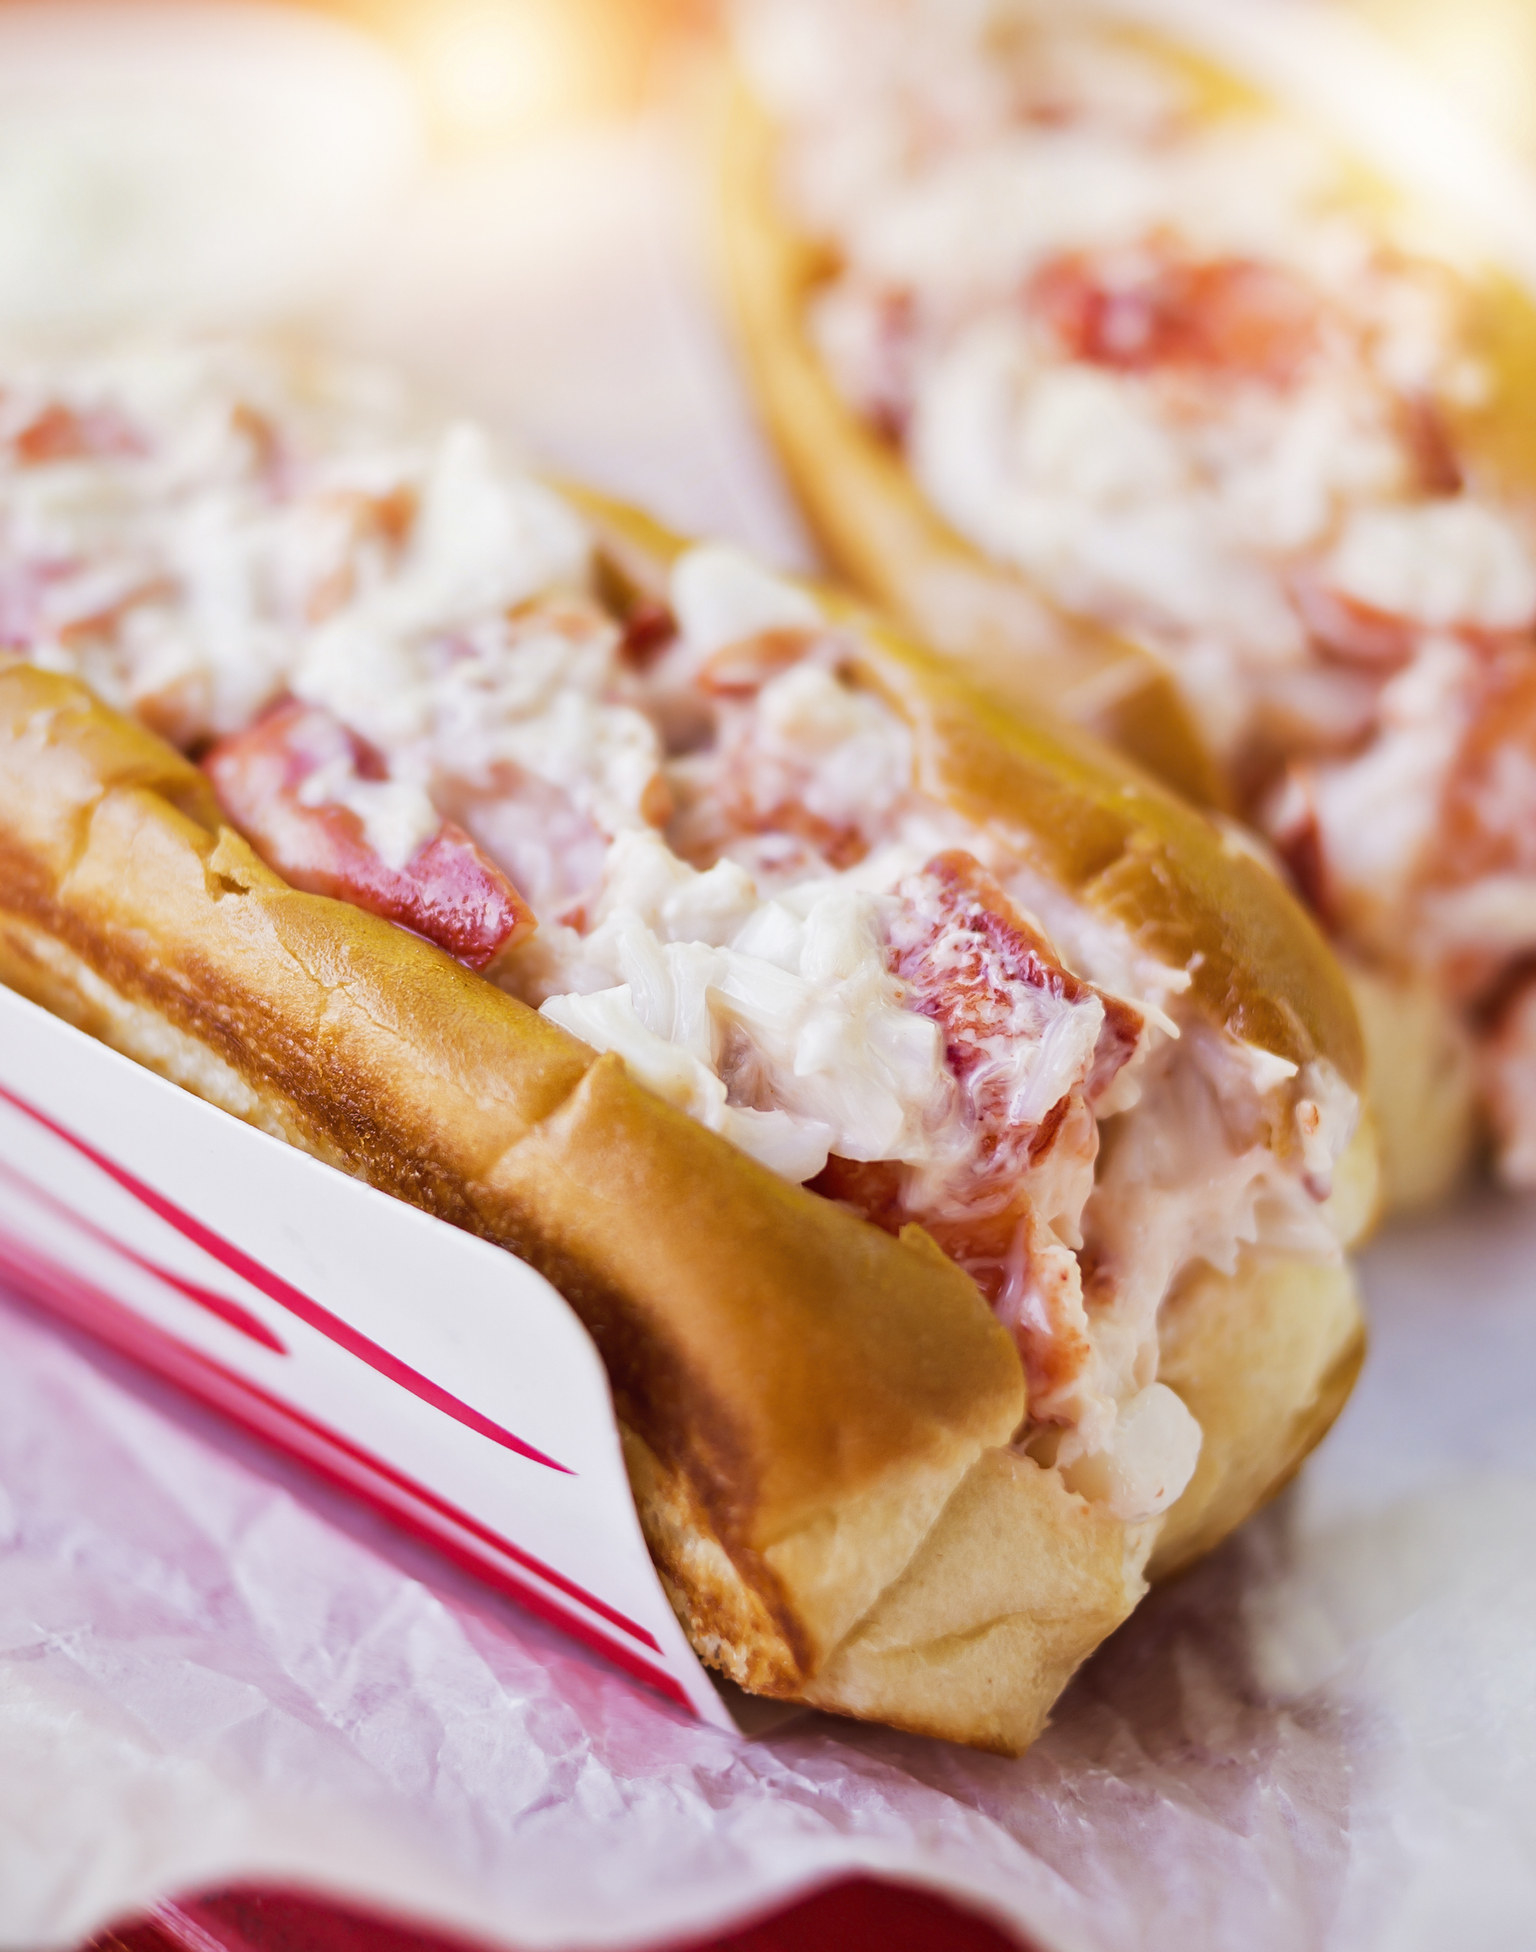 Two lobster rolls with a bit of mayo on toasted buns